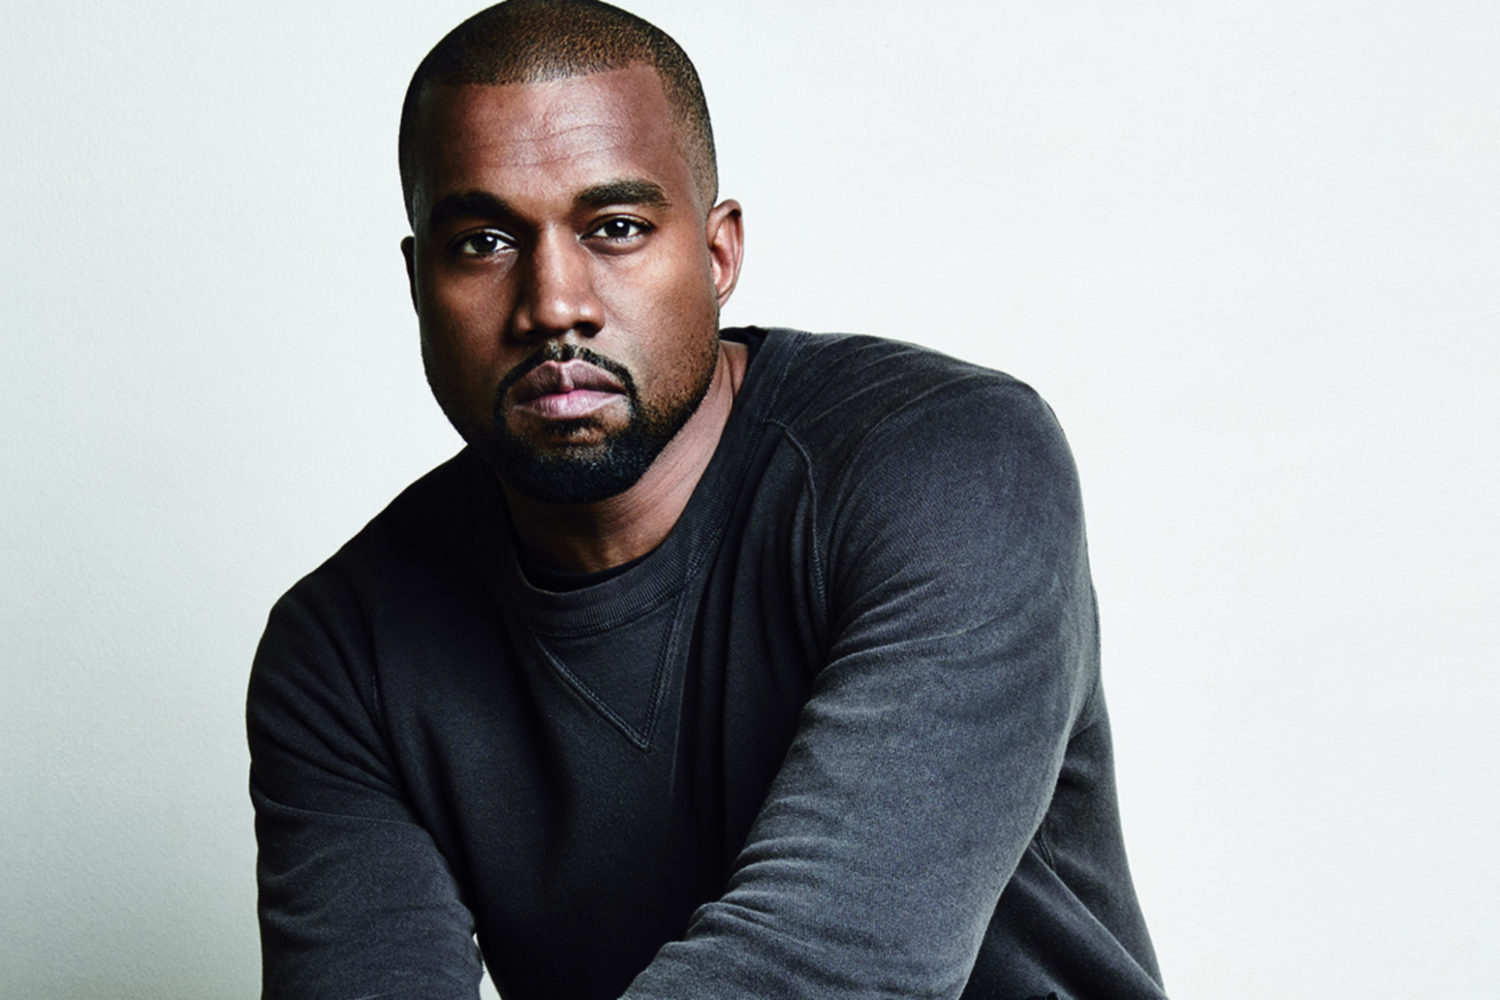 Kanye West pays tribute to late mother on 'DONDA'